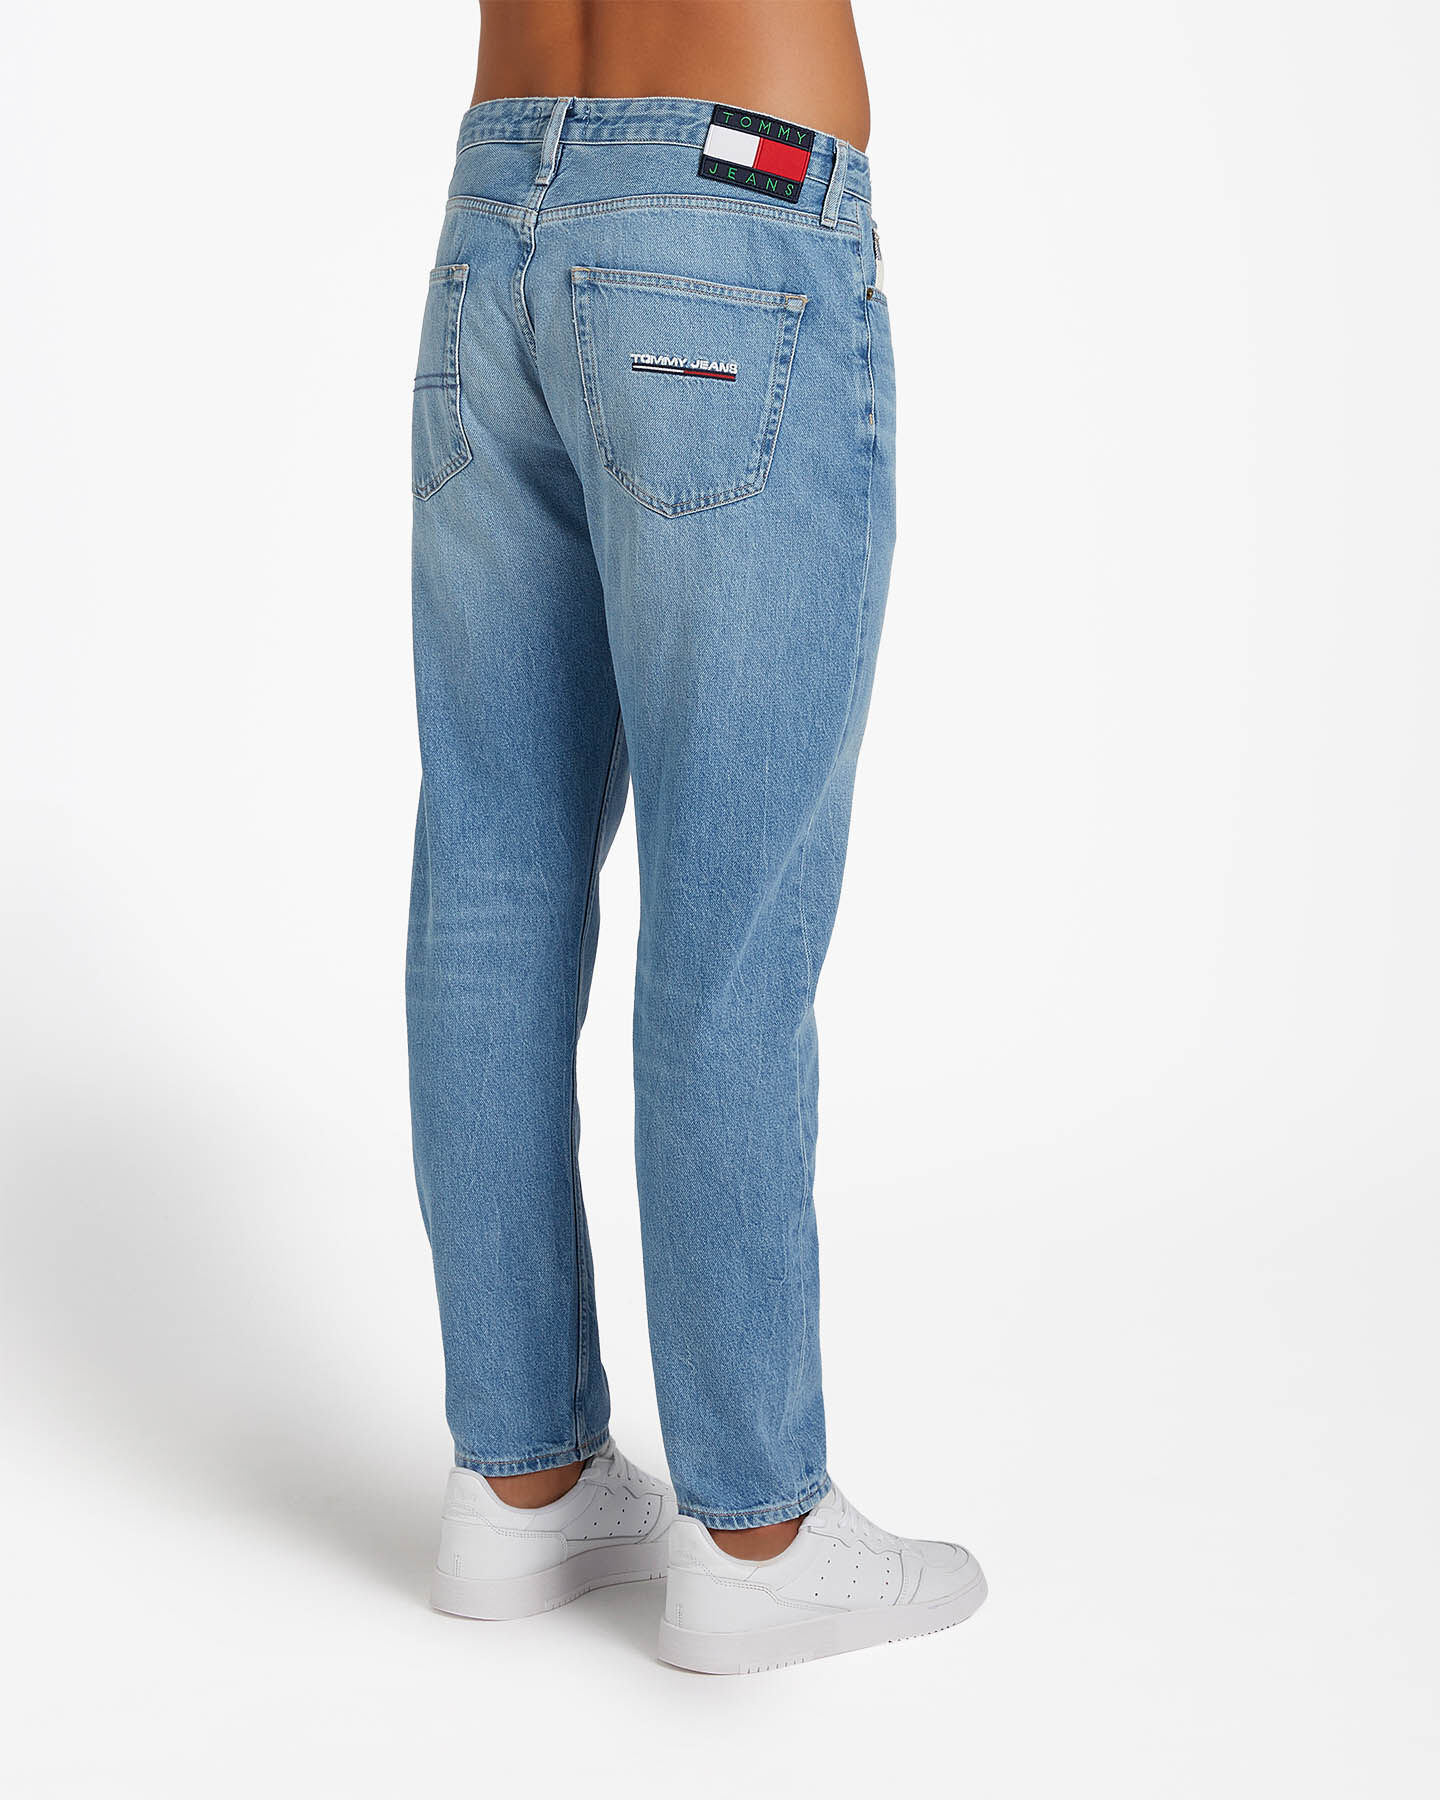 Jeans TOMMY HILFIGER DAD STRAIGHT M S4082066 scatto 1